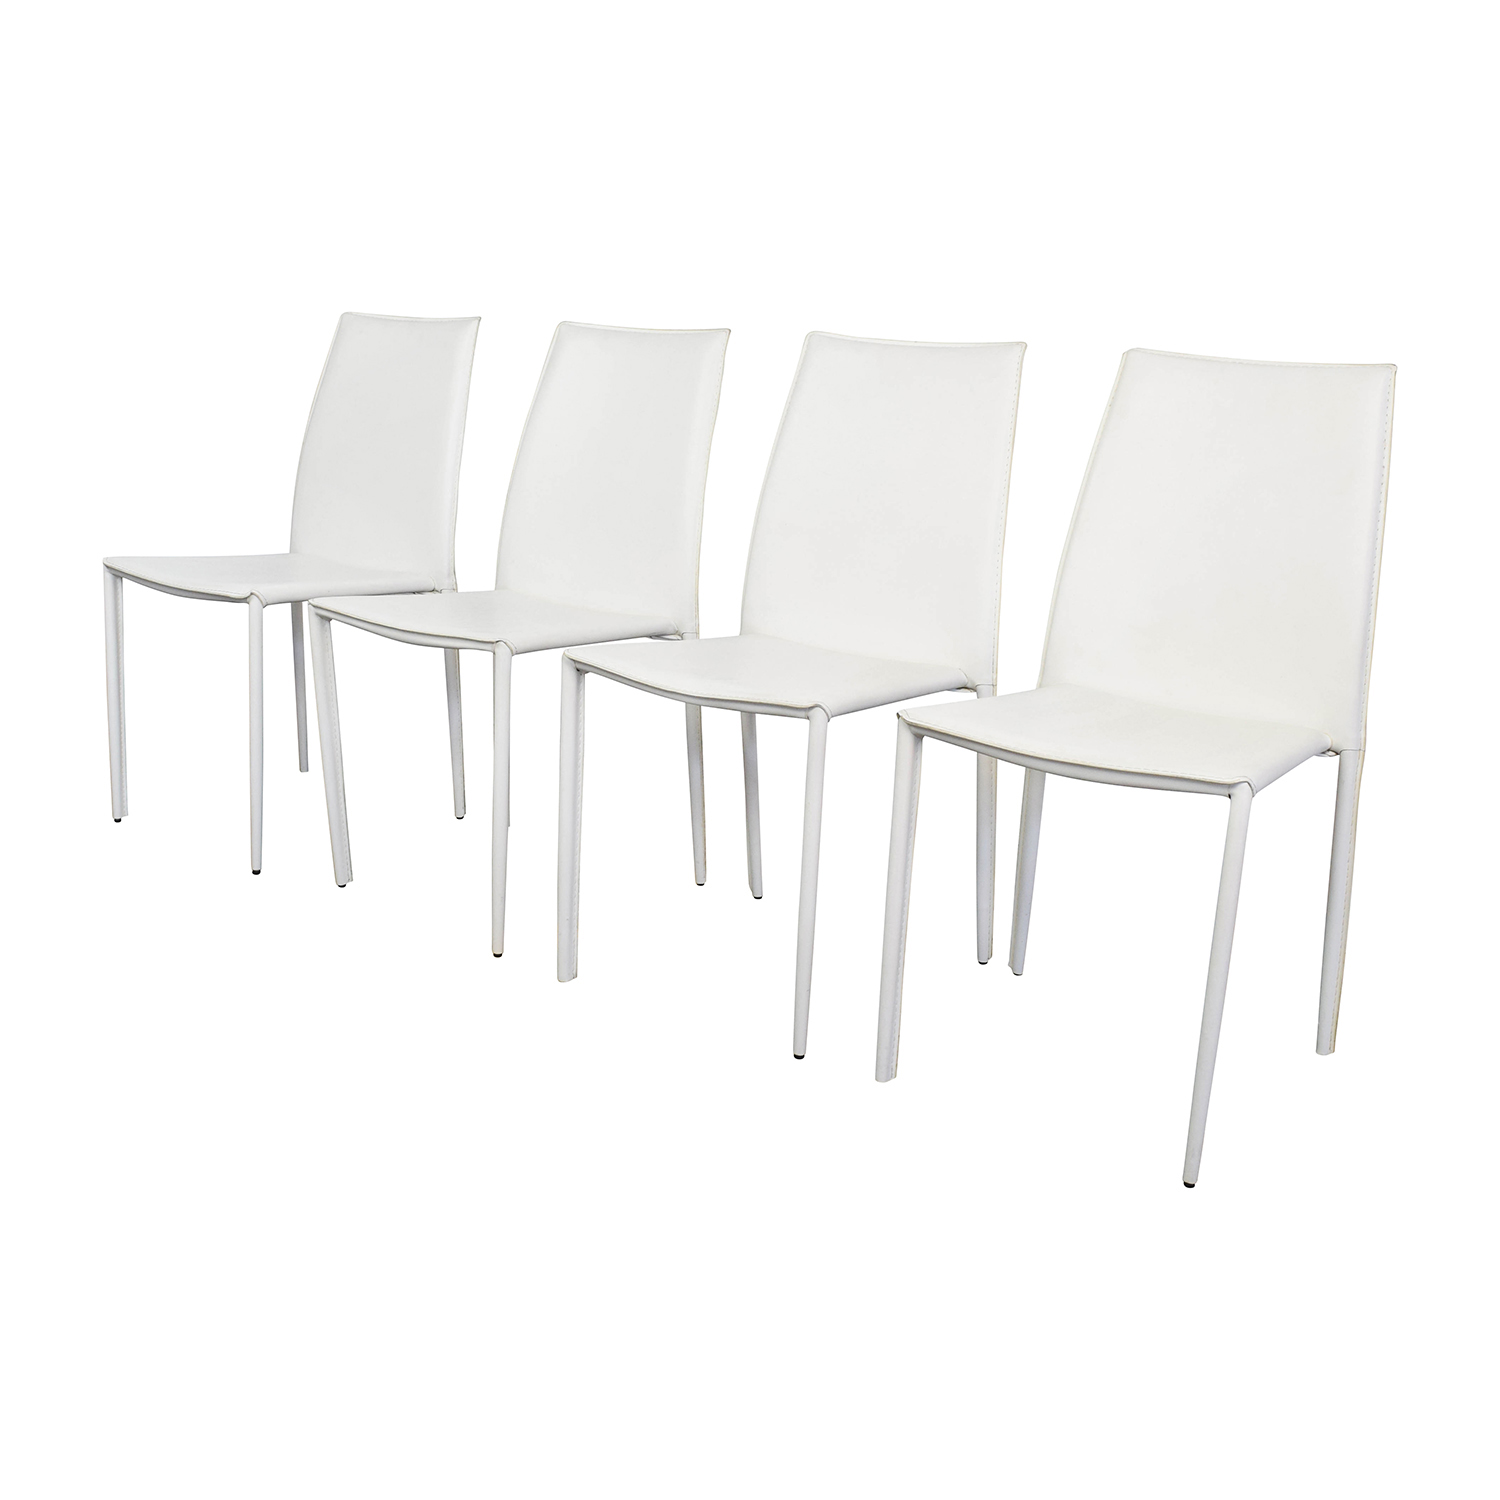 Popular 225 list all modern dining chairs for Contemporary white dining chairs